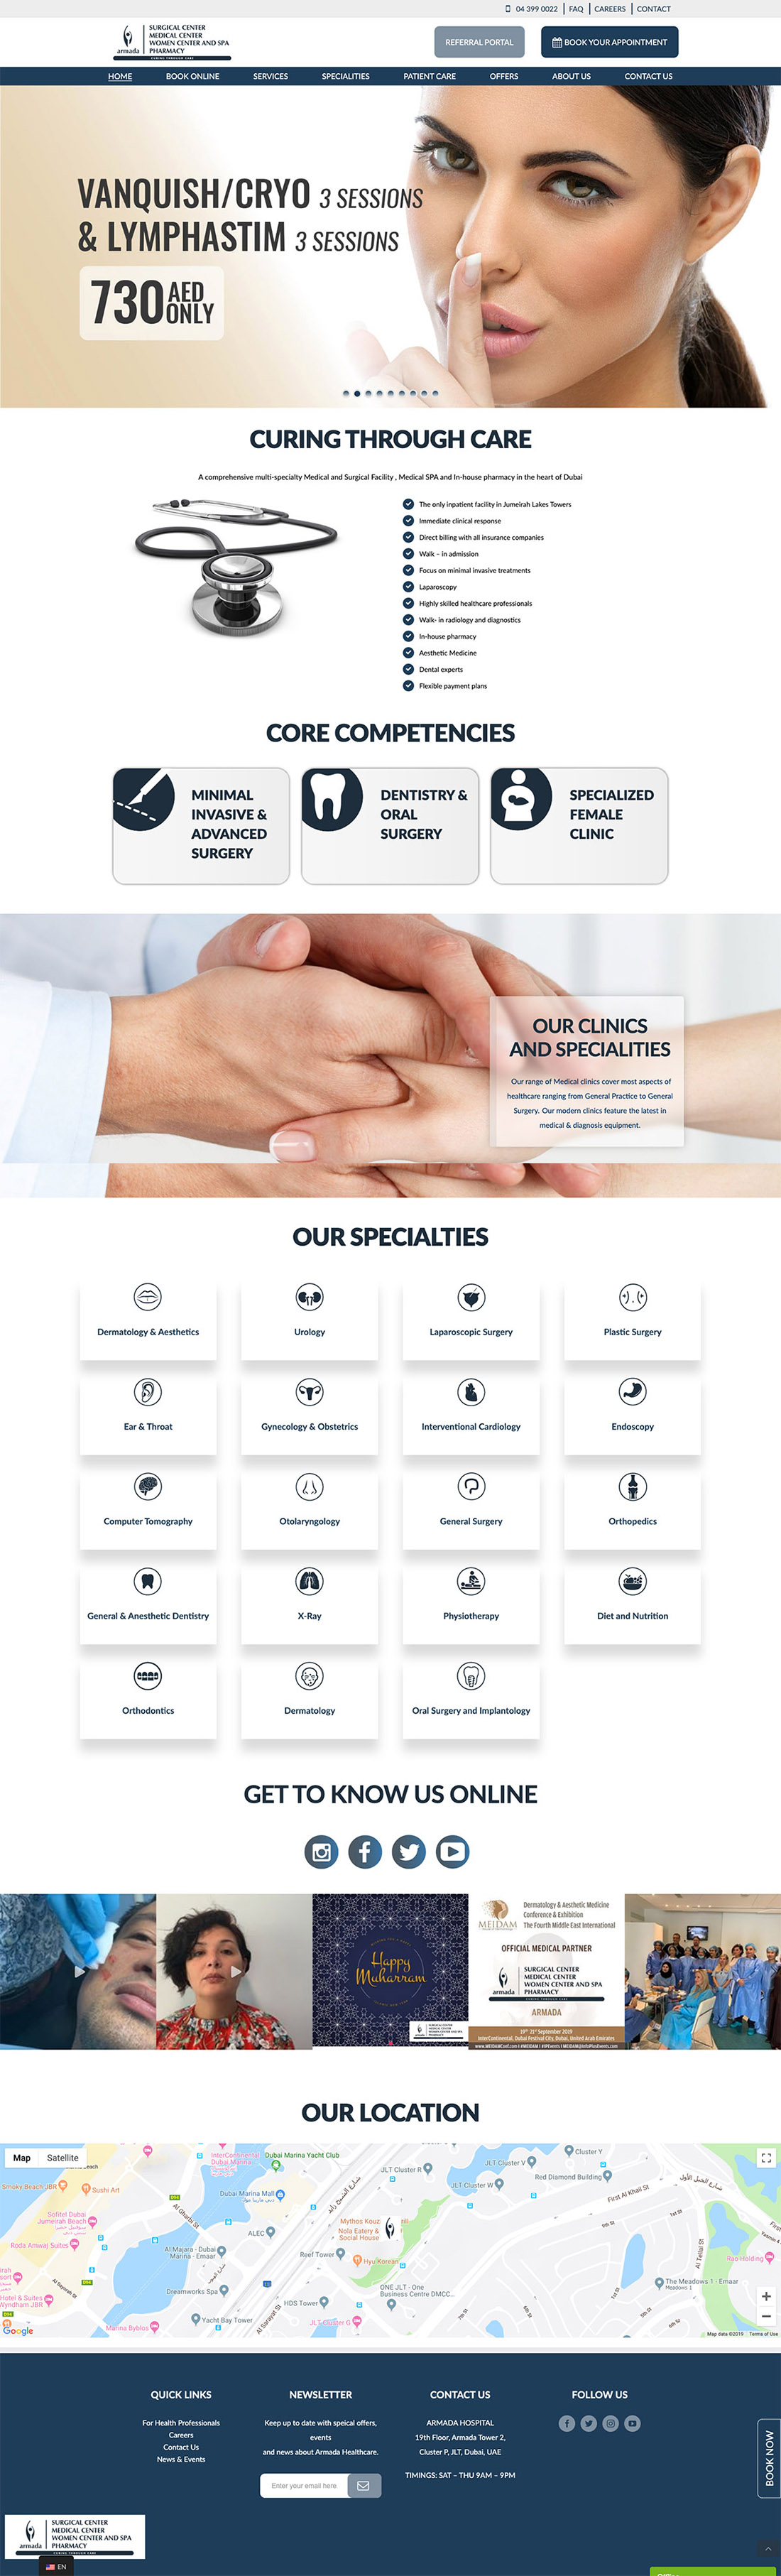 armada hospital home page design